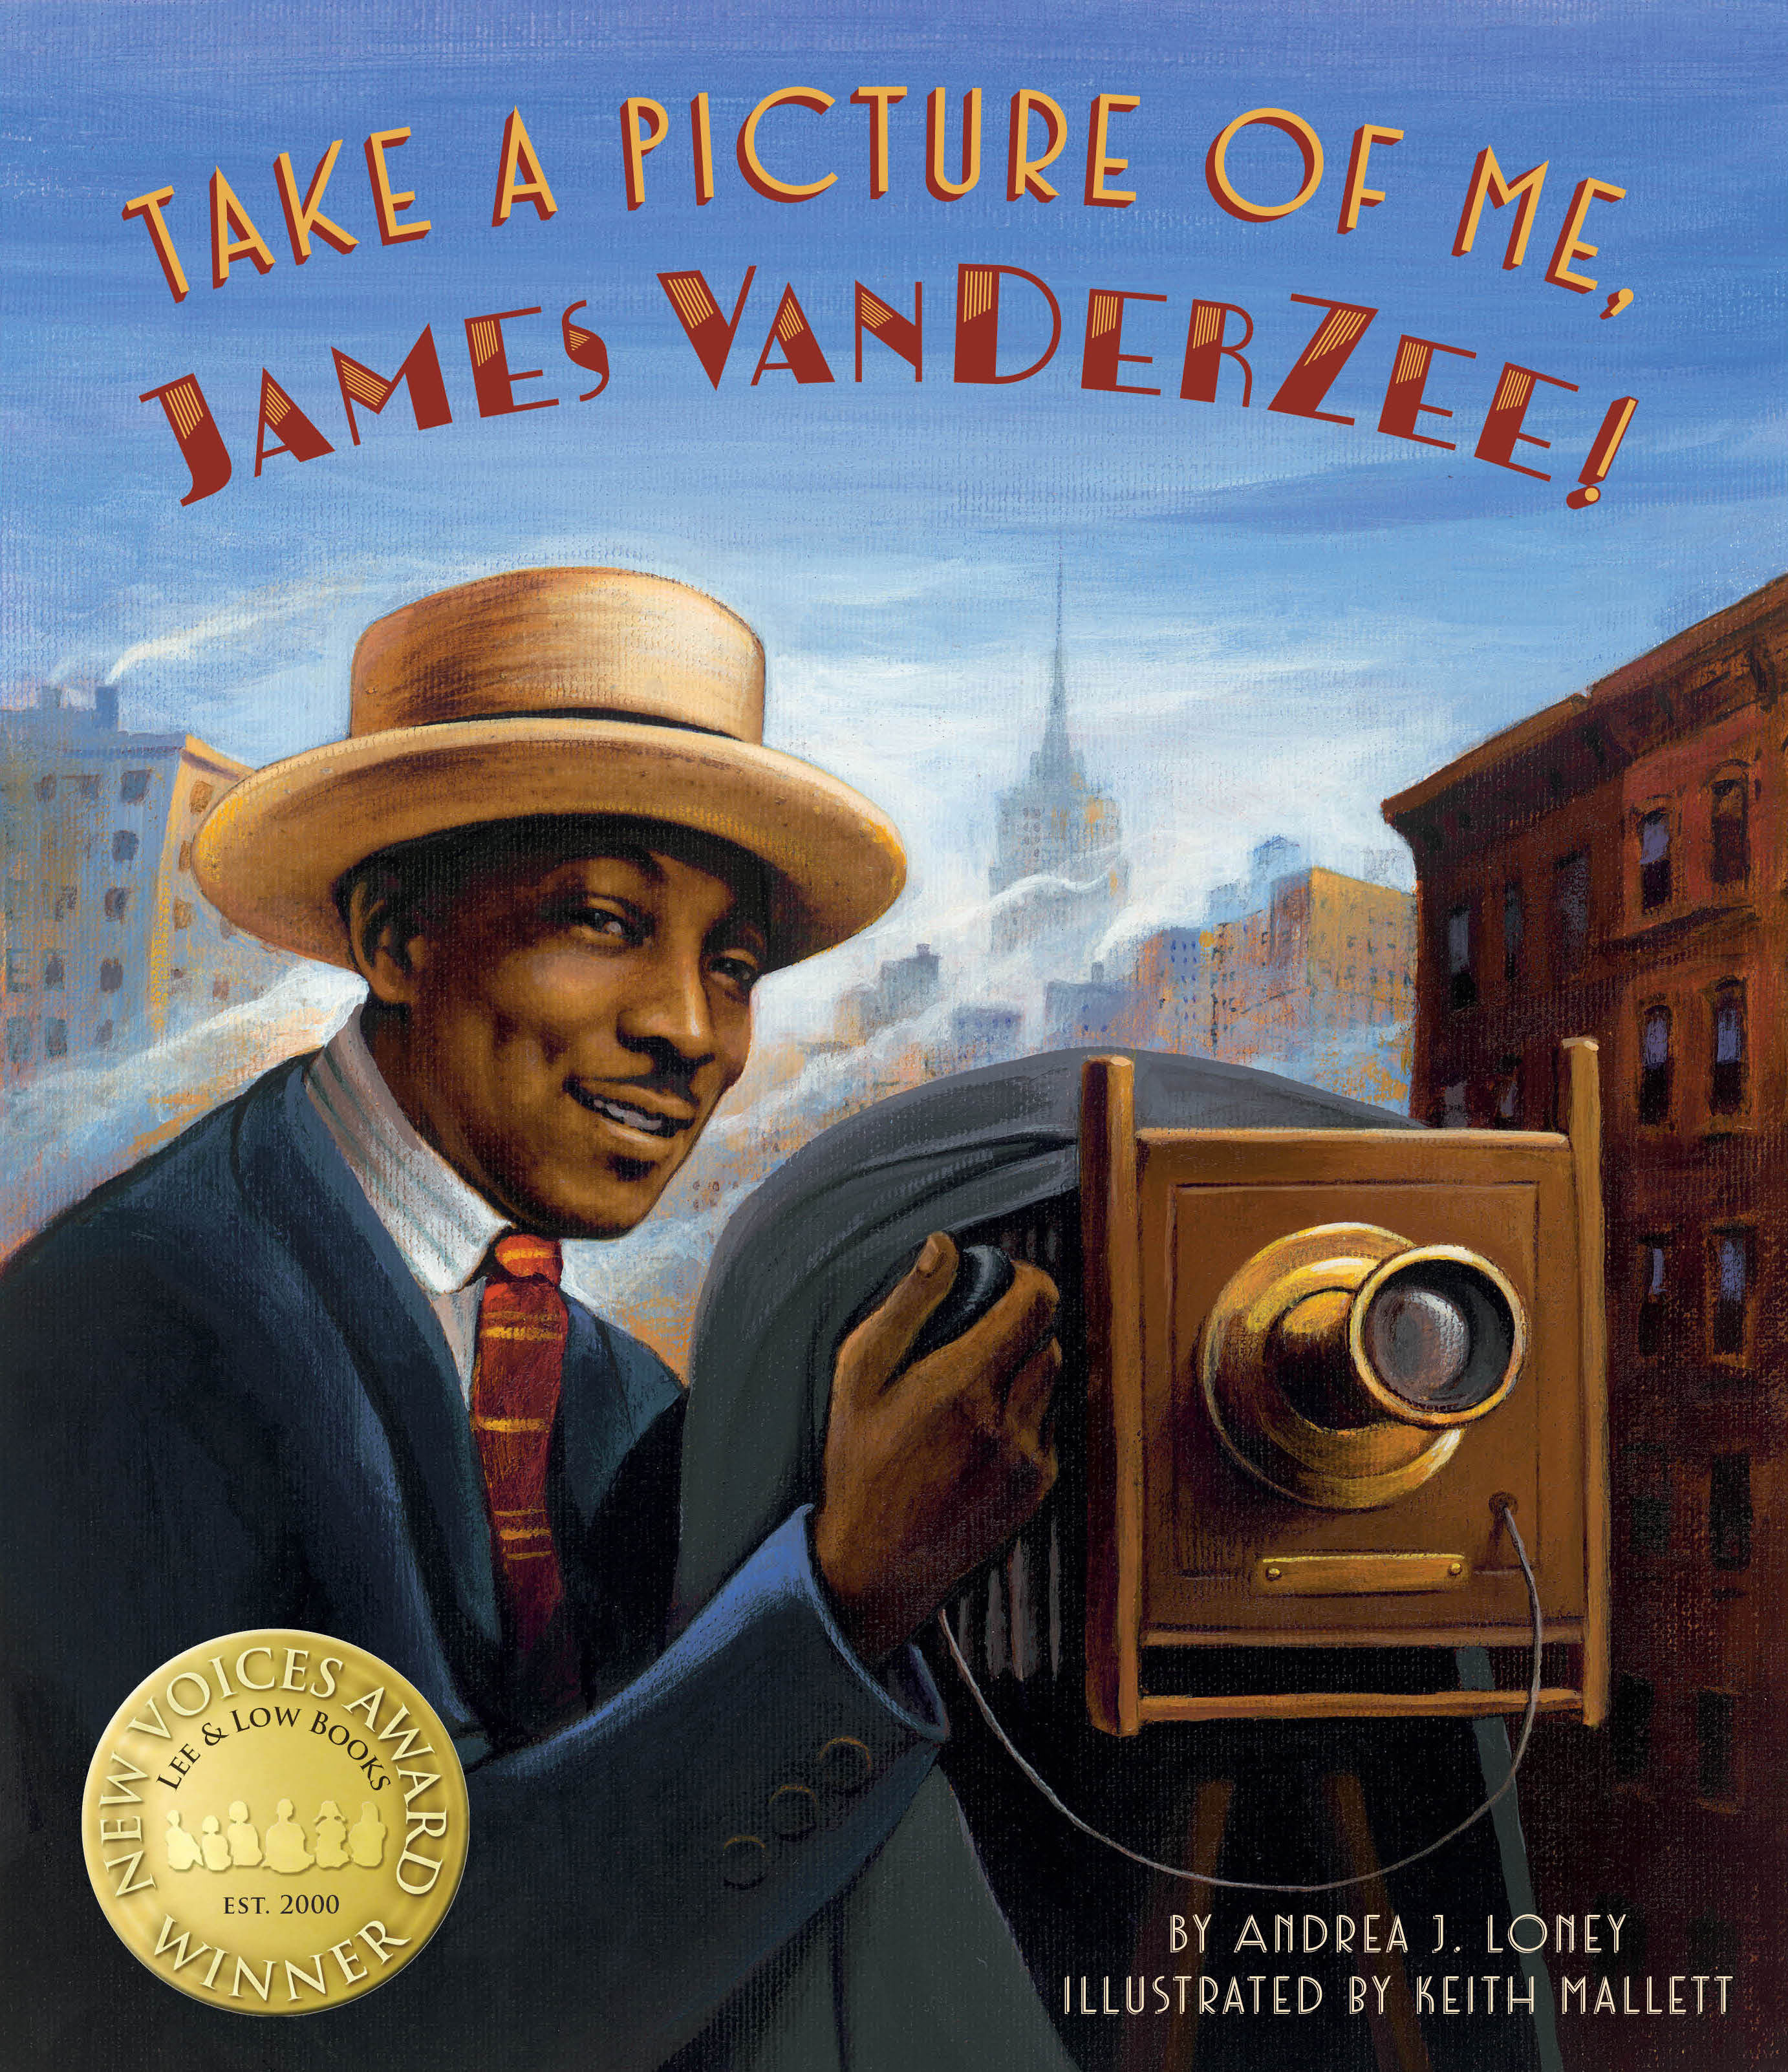 Take a Picture of Me, James VanDerZee by Andrea J. Loney